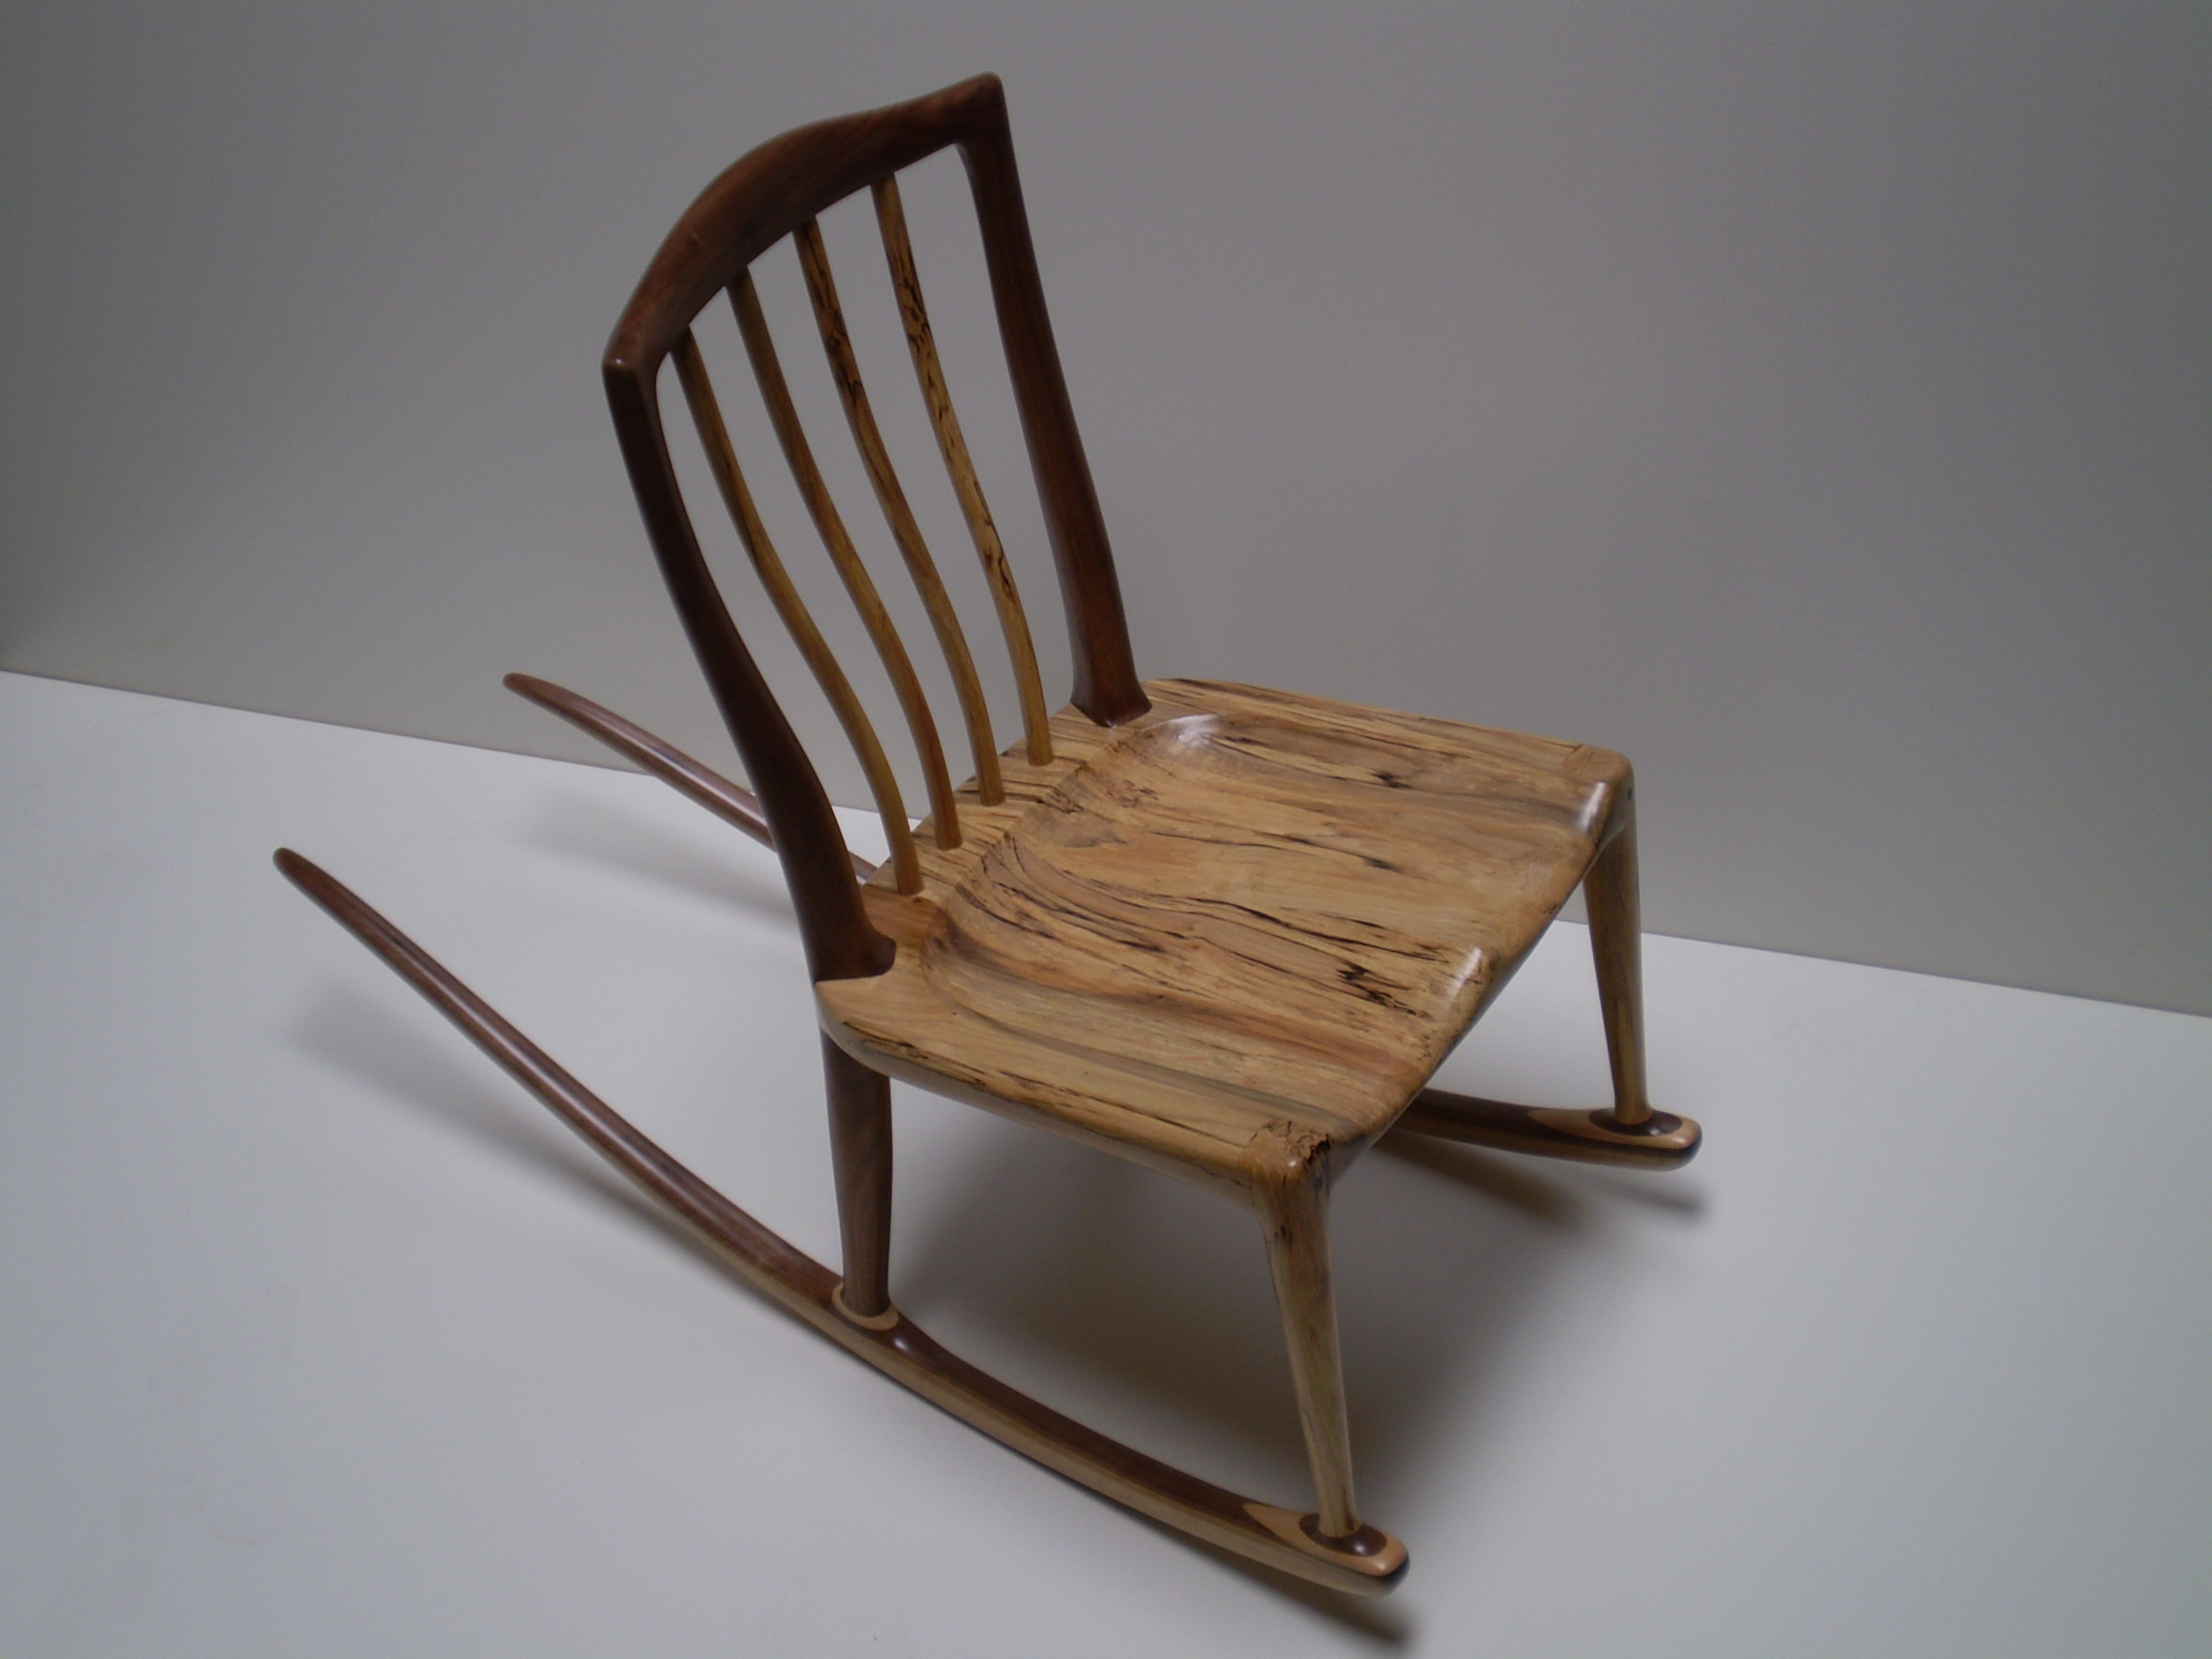 Rick Brewer Custom Cabinets Handmade Rocking Chairs And Furniture